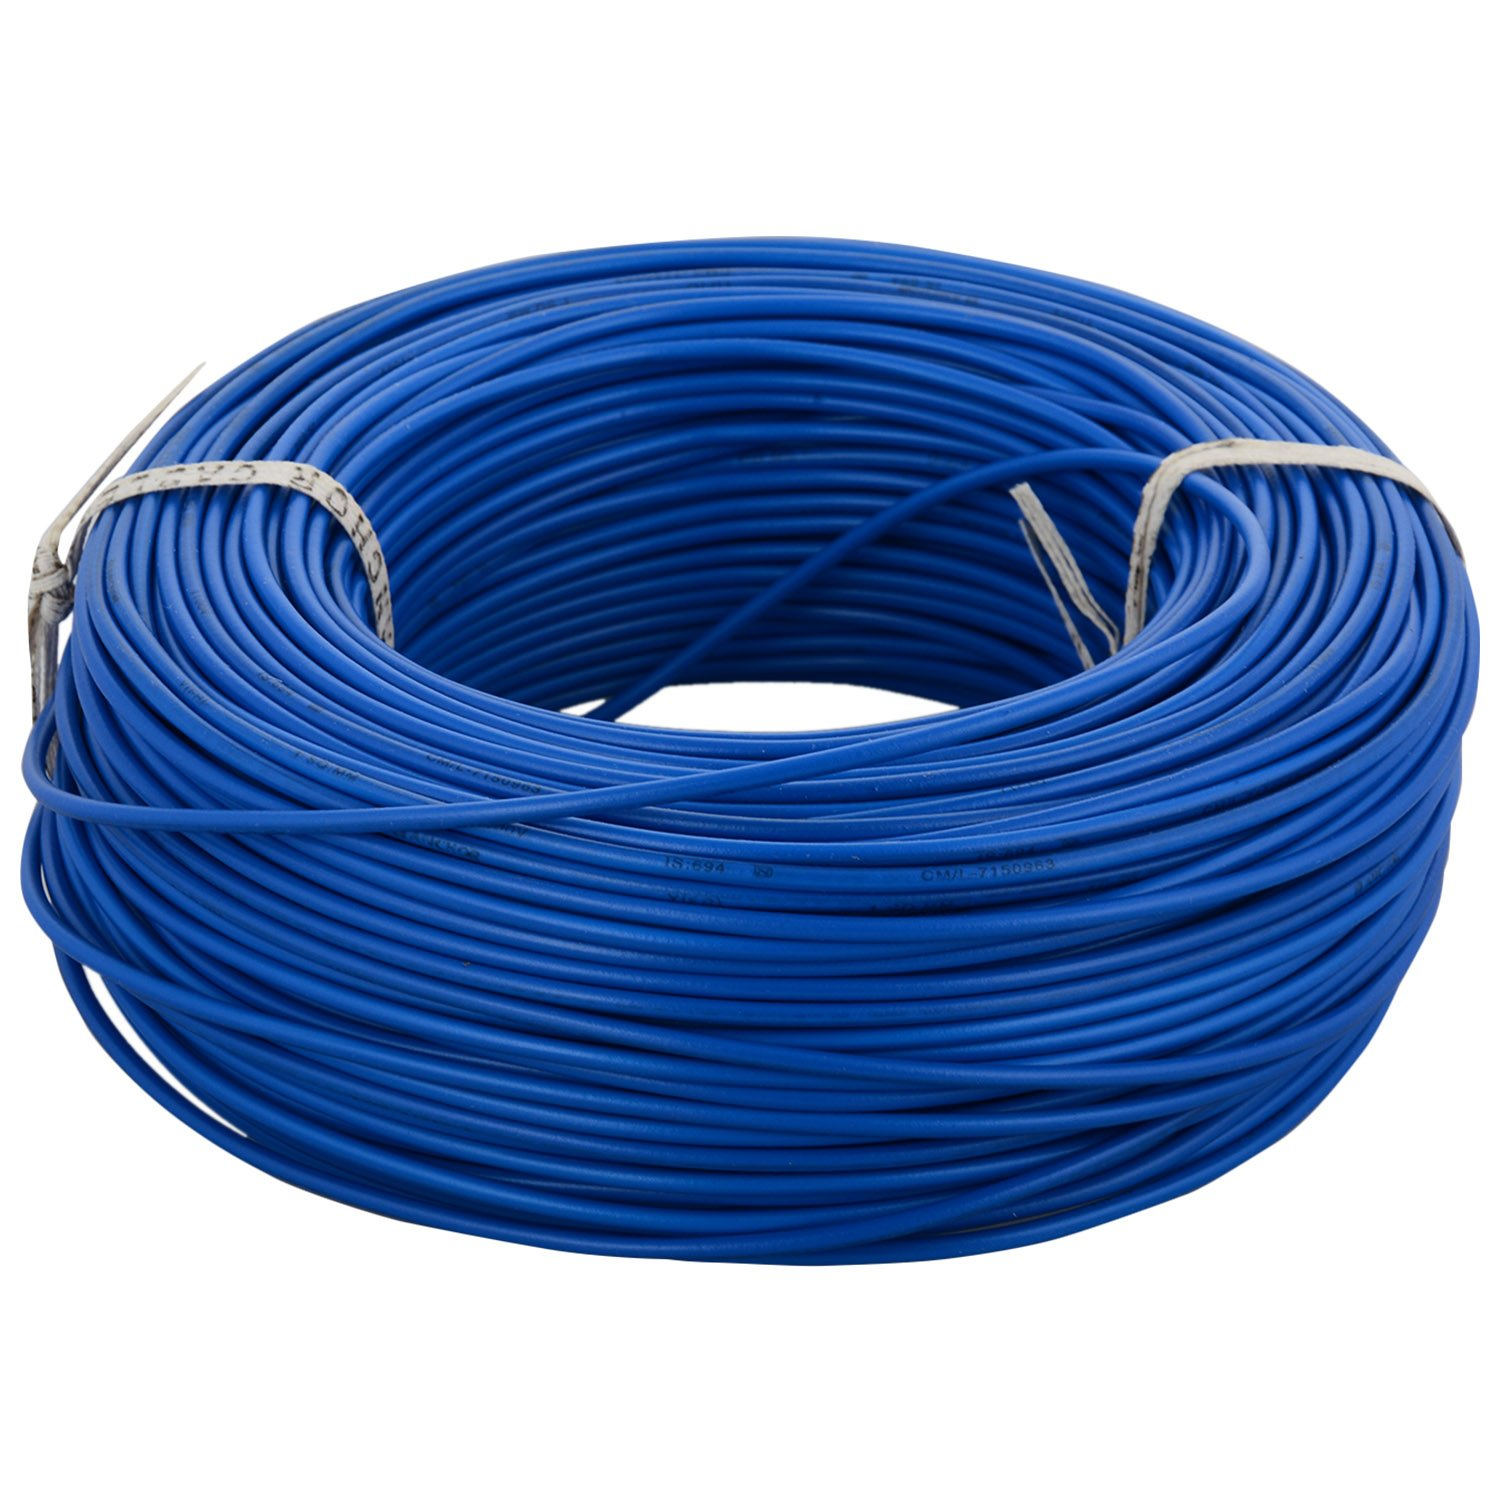 Cable buy electric cable 2 5 sq mm cable 1 5 sqmm wire product on - Anchor Insulated Copper Pvc Cable 1 0 Sq Mm Wire Blue Amazon In Home Improvement